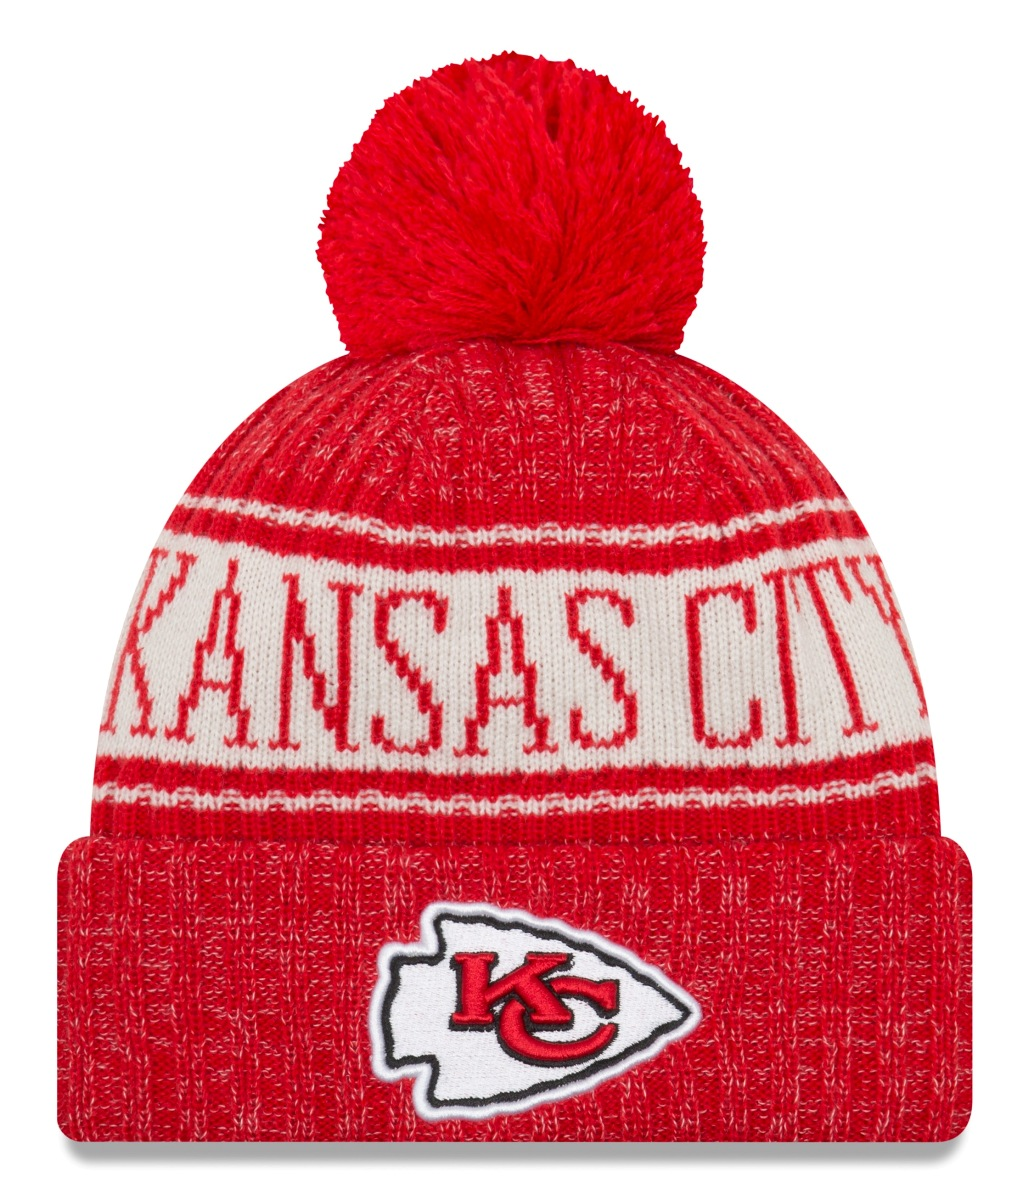 Kansas City Chiefs New Era 2018 NFL Sideline On Field Sport Knit Hat - Red